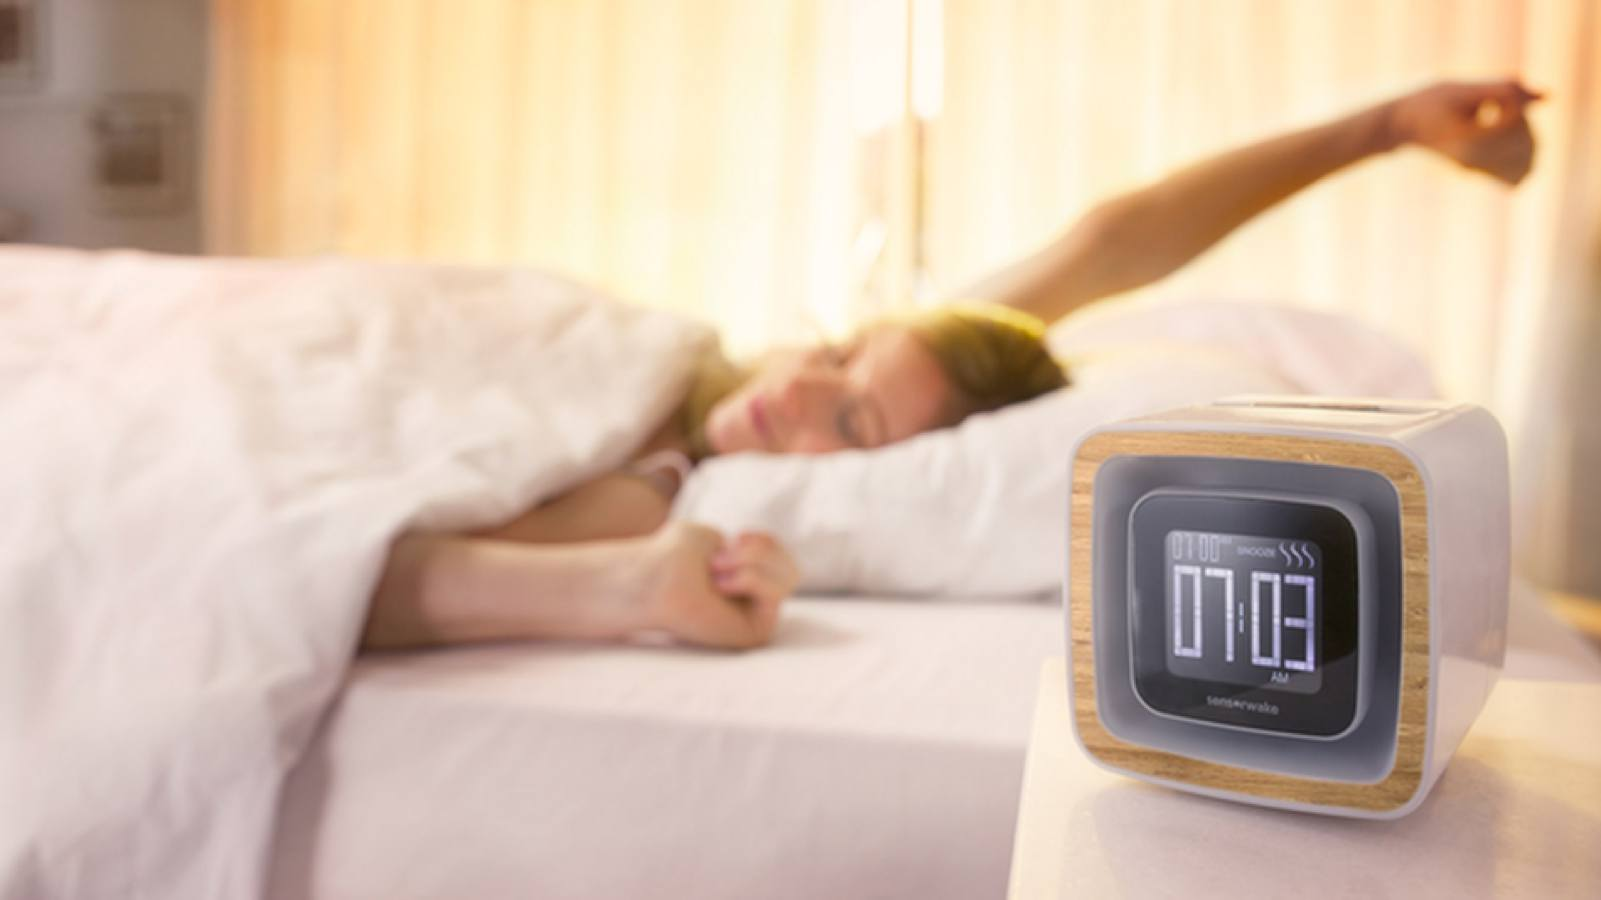 This alarm clock wakes you up using smells, lights, and sounds